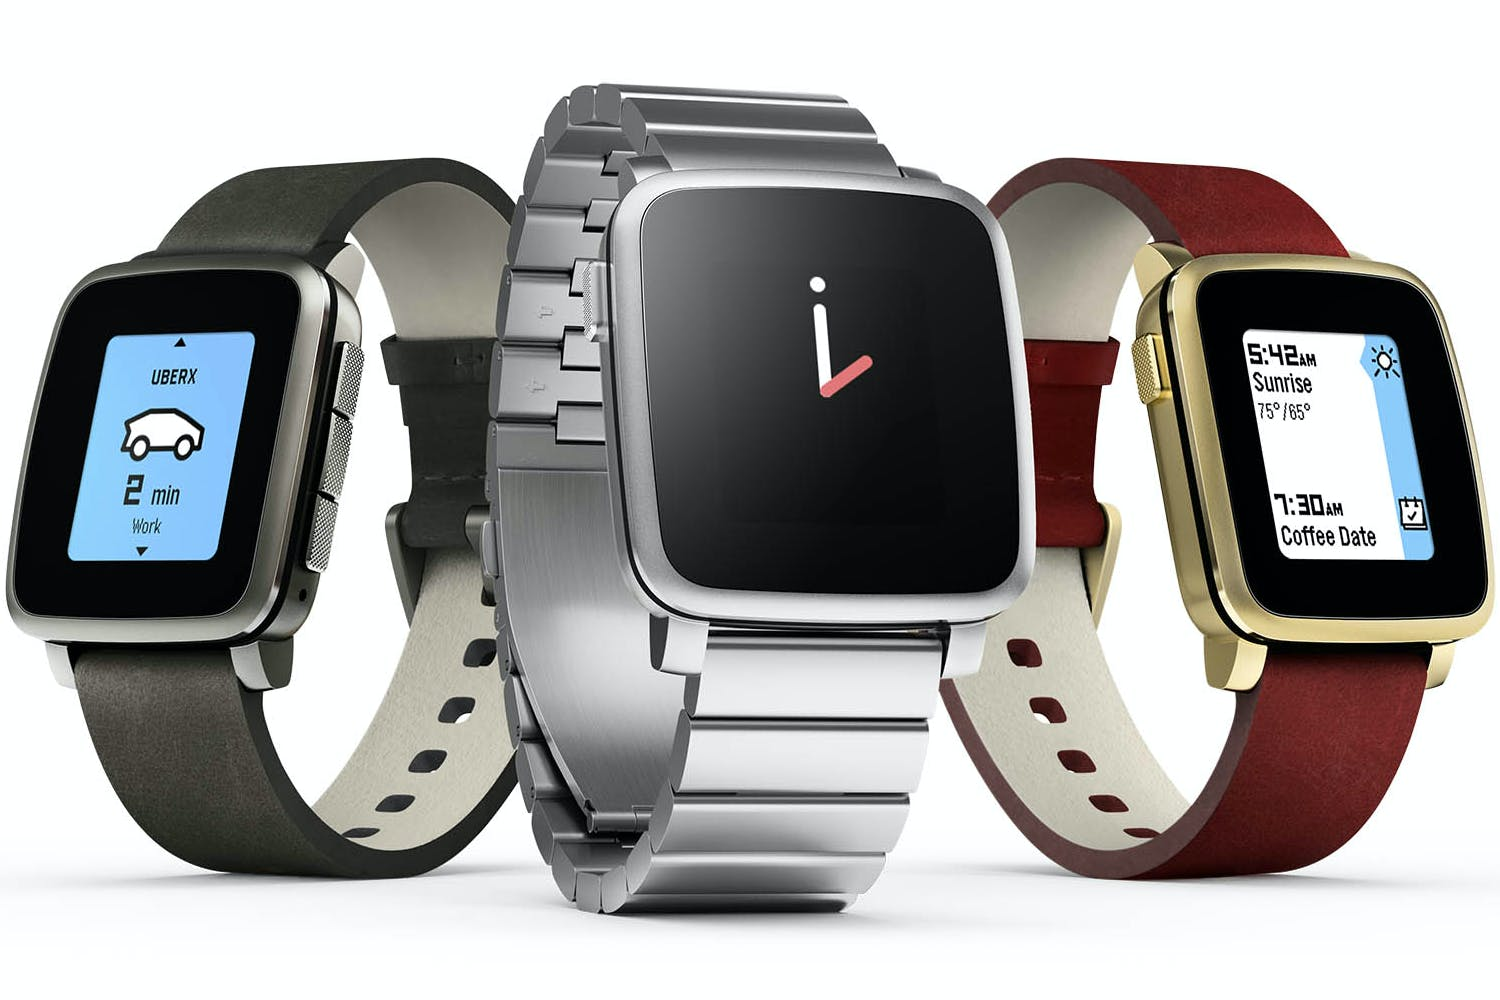 Pebble Time Steel Smartwatch with Leather Band